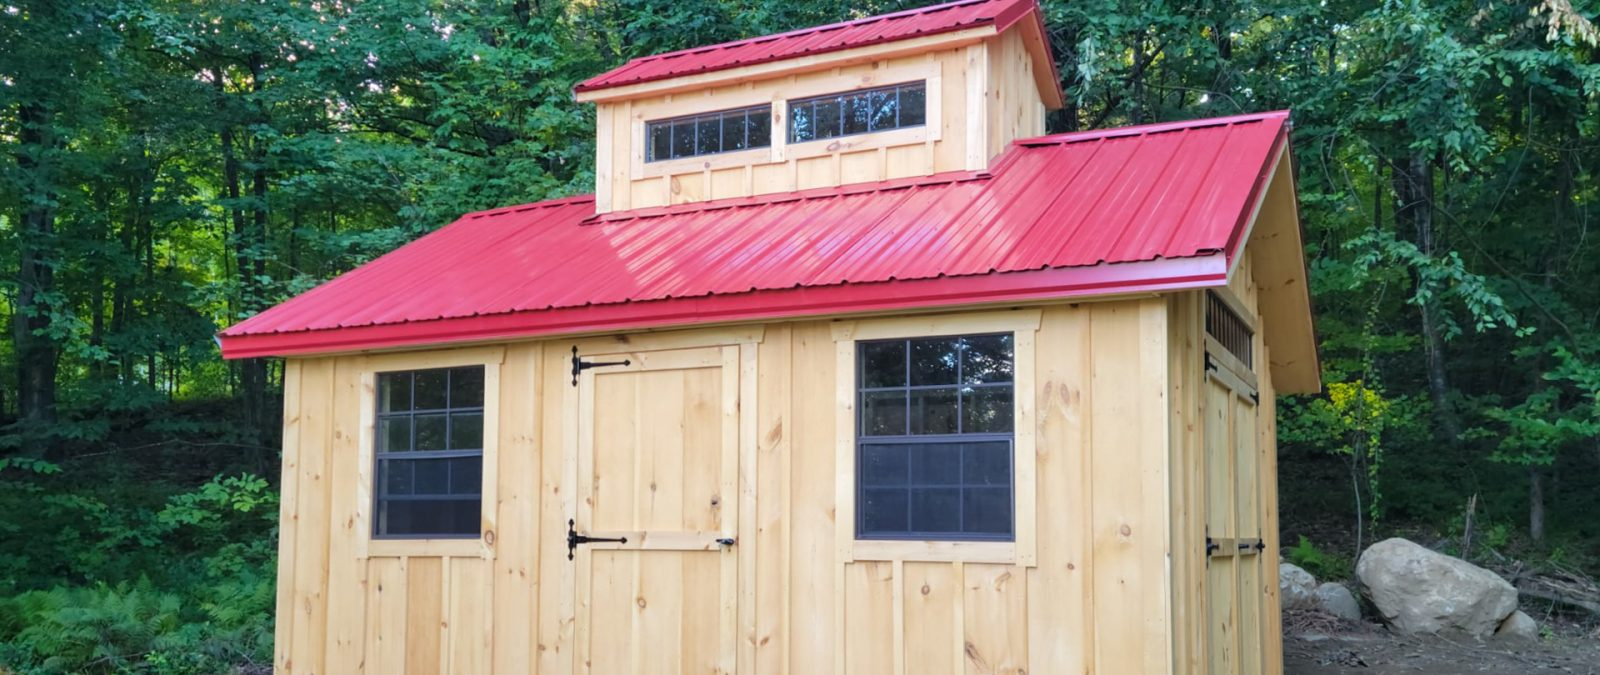 unique shed with metal roof